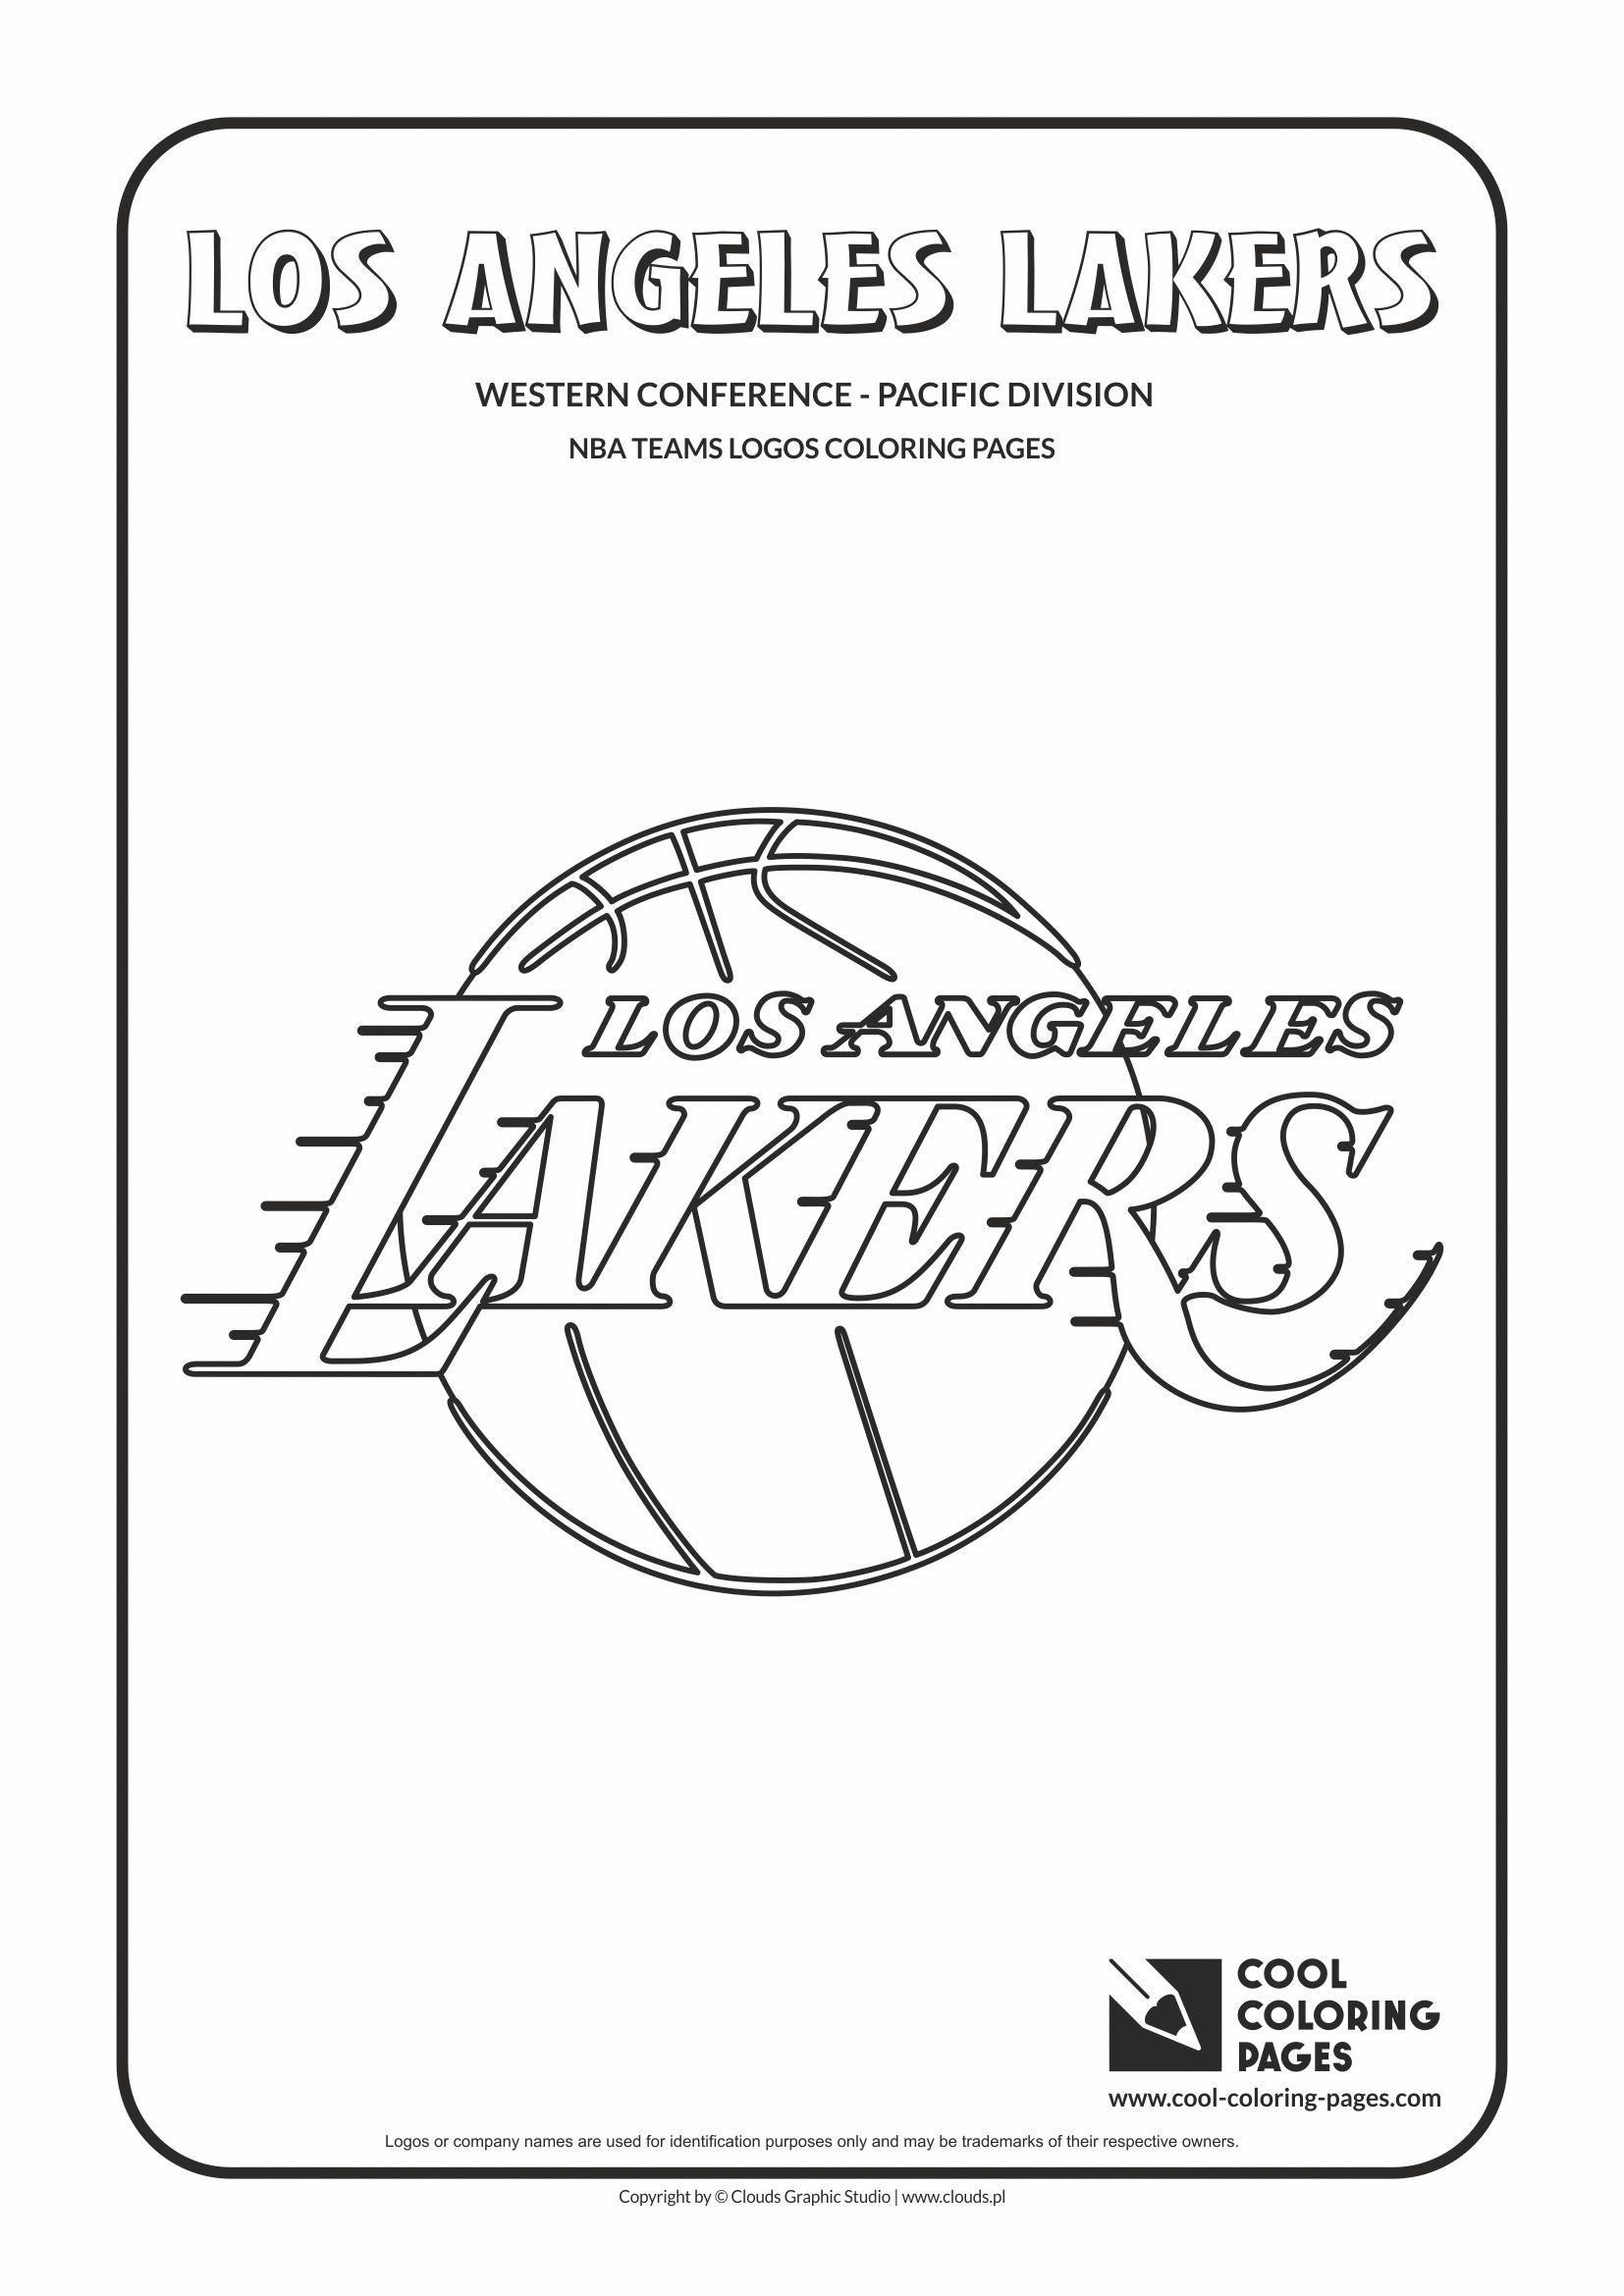 Cool Coloring Pages Nba Basketball Clubs Logos Western Conference Pacific Basketballclub Coloring Pages Basketball Teams Nba Basketball Teams